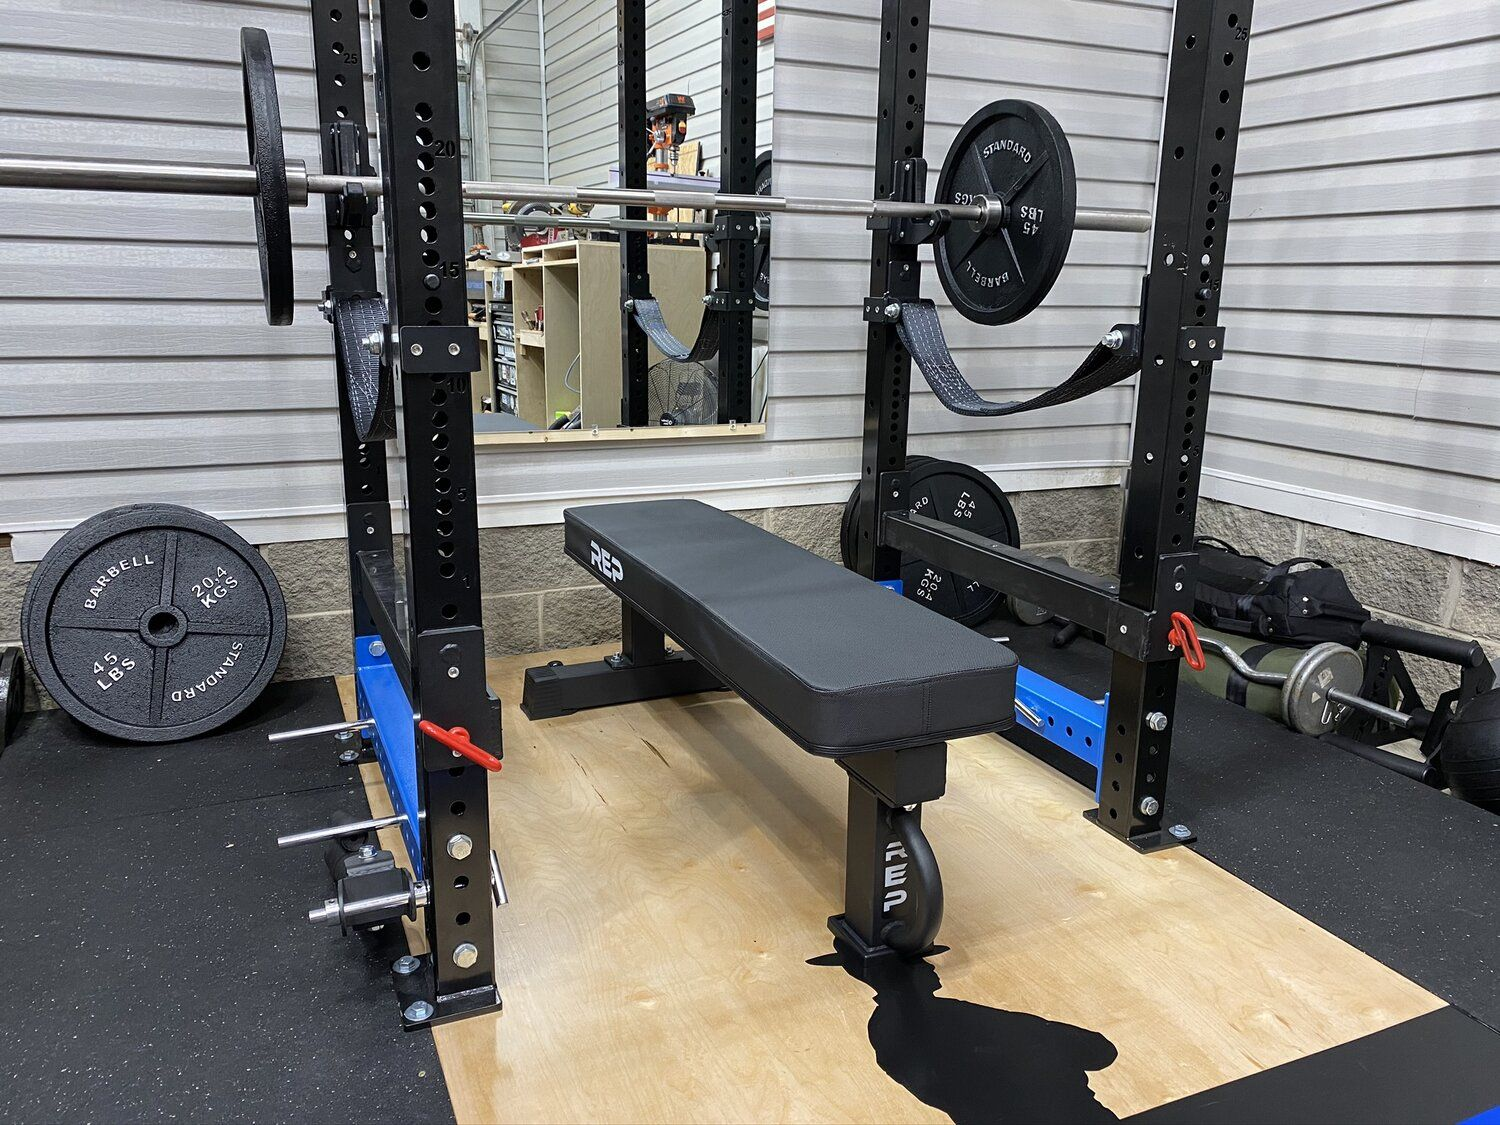 Rep Fitness Fb 5000 Flat Bench And Pr 4000 Power Rack In 2020 Home Gym Bench Power Rack Home Gym